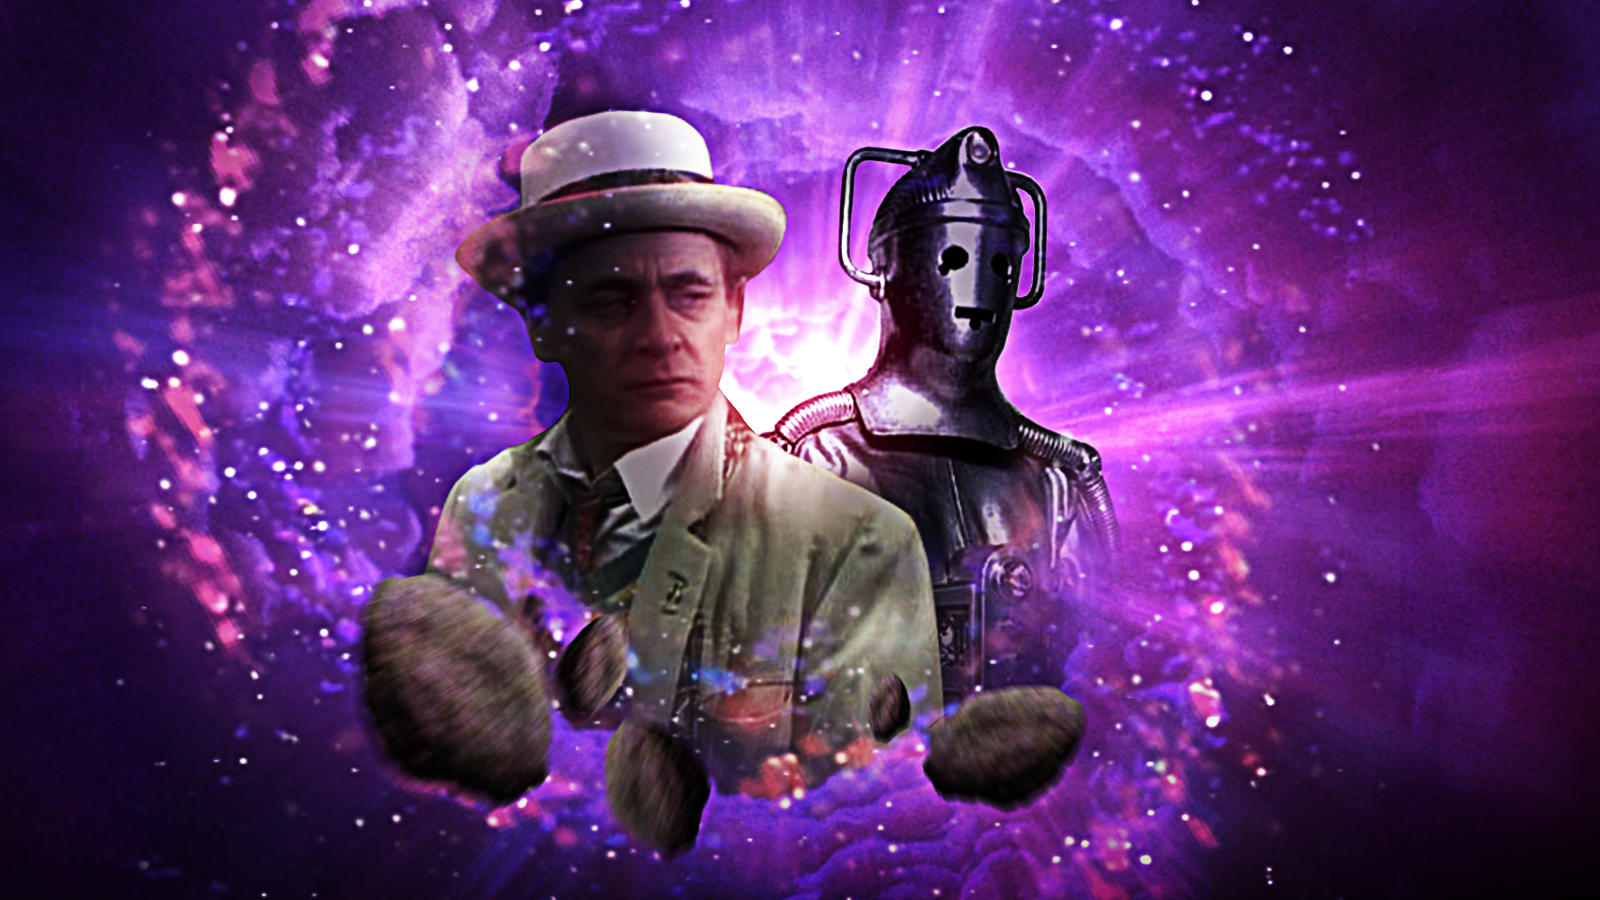 Doctor Who - Illegal Alien Artwork by E-SPACE-Productions